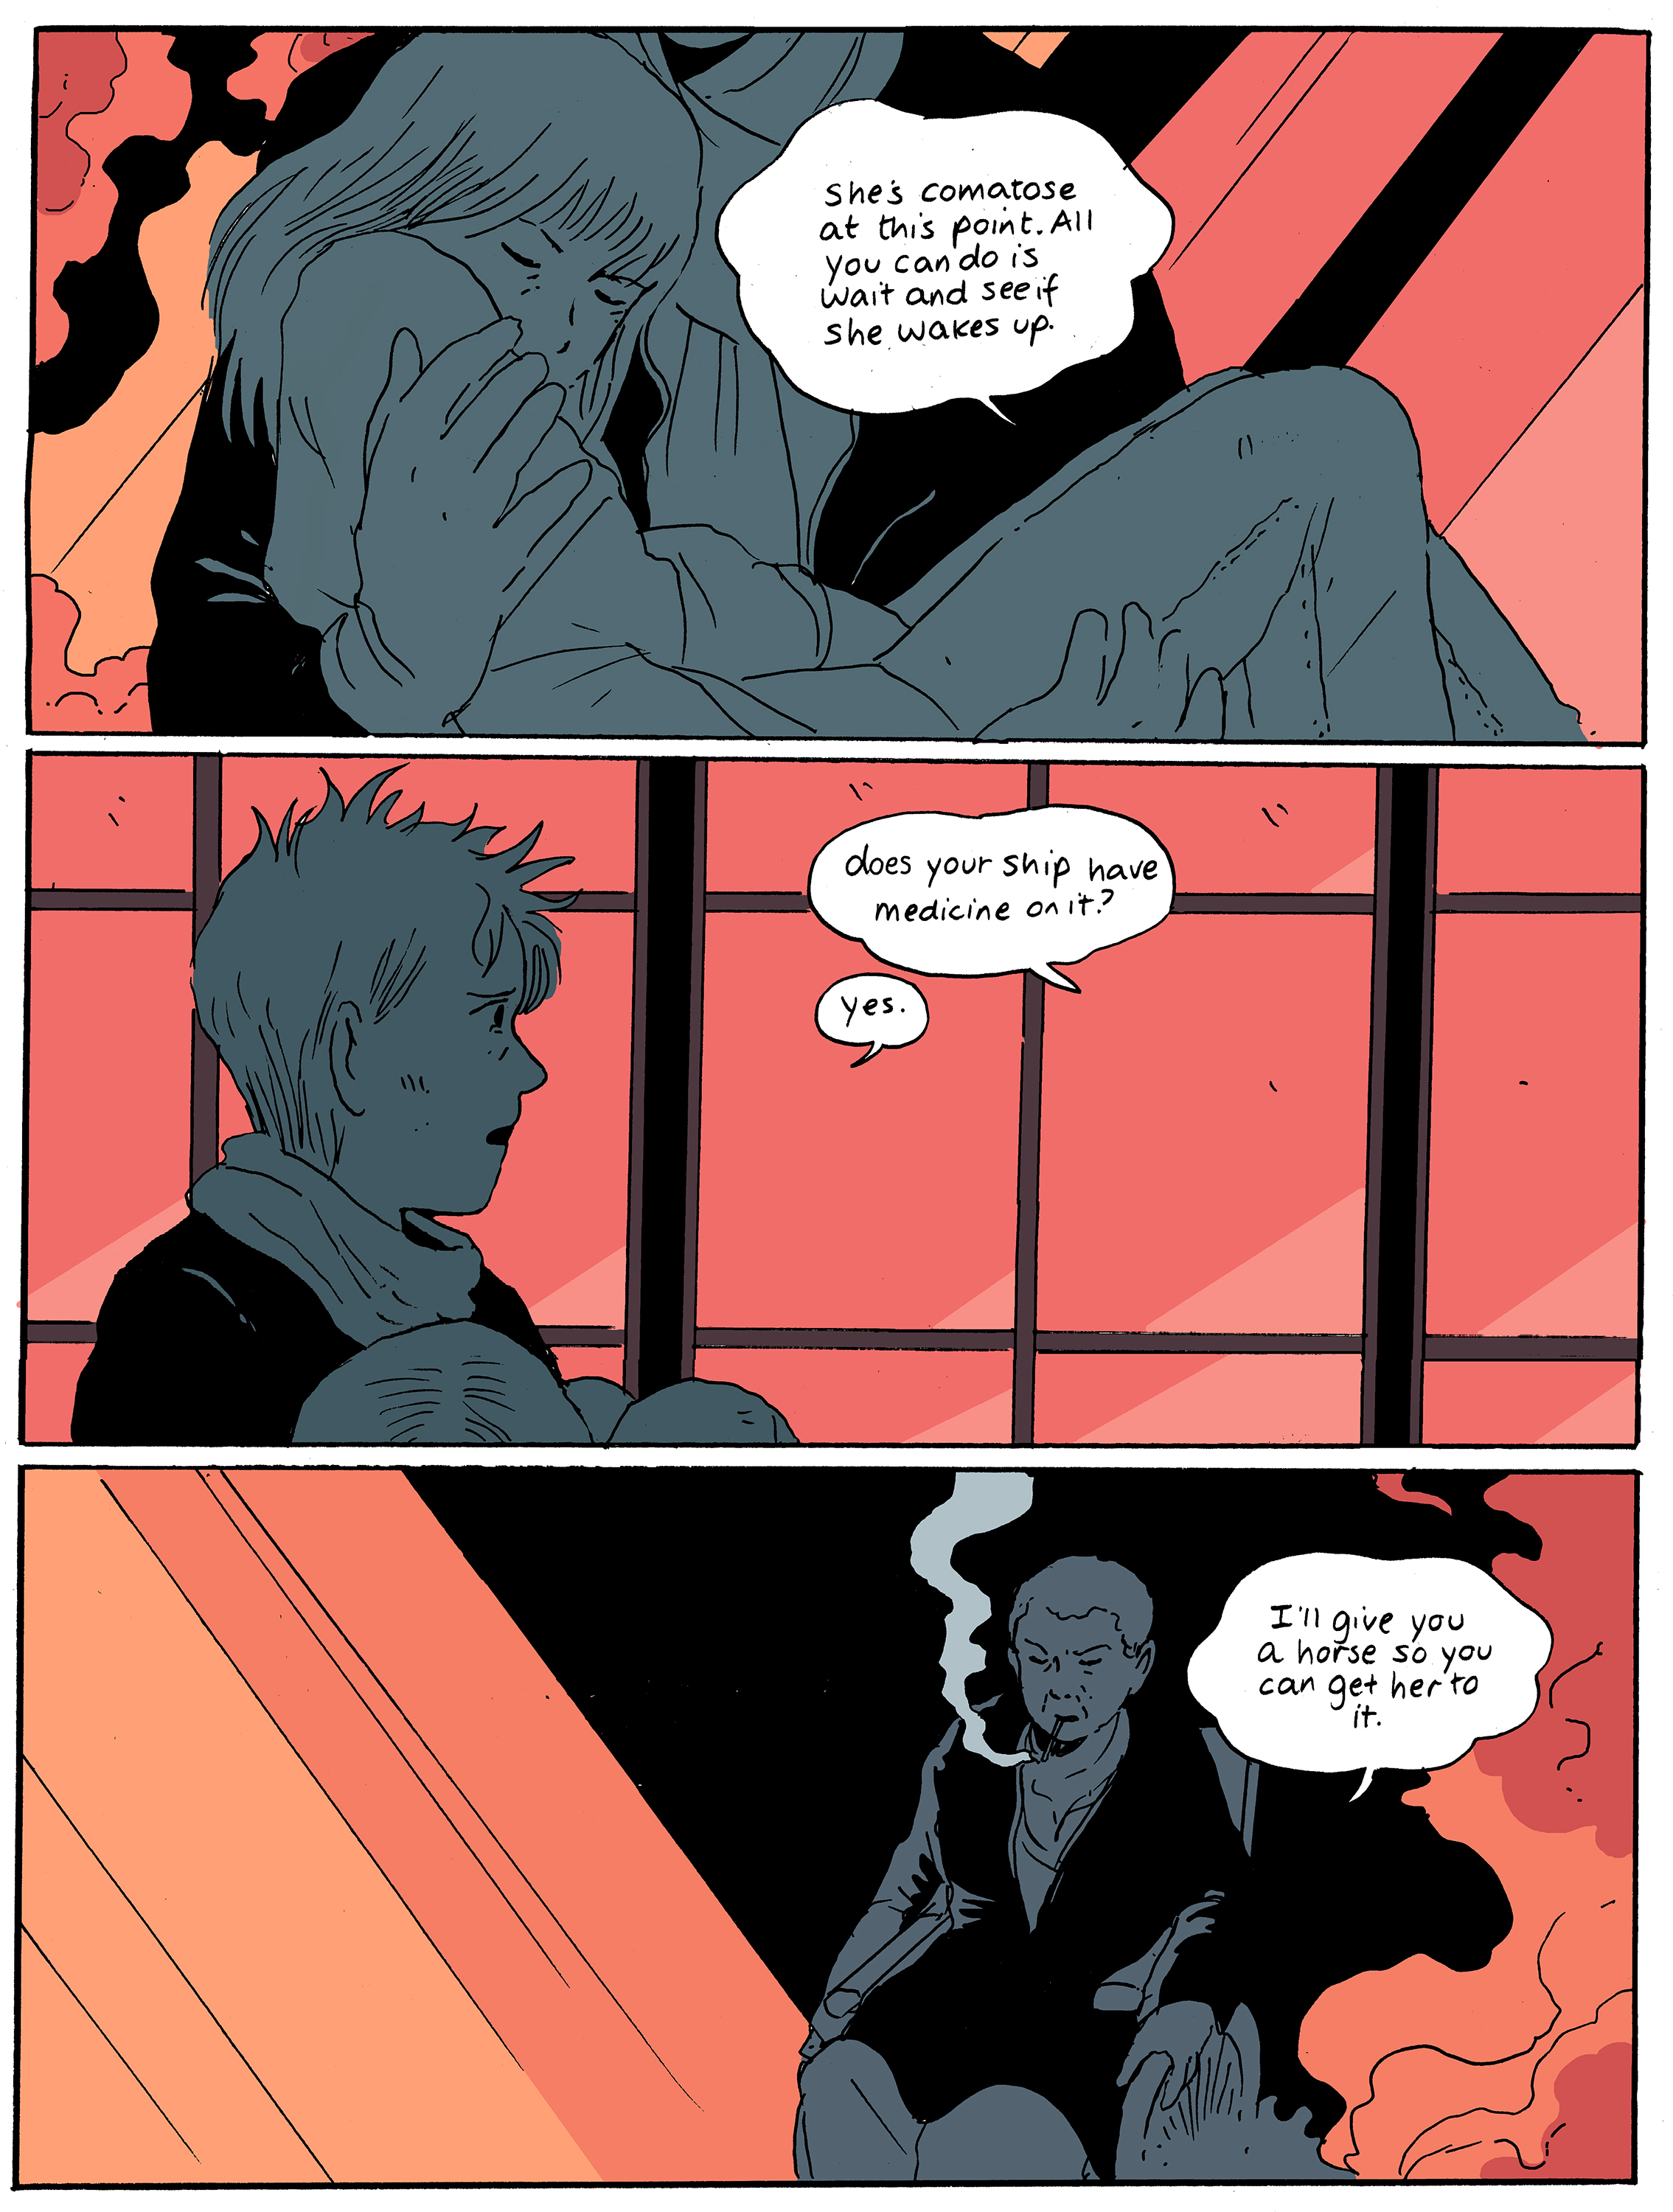 chapter18_page04.jpg